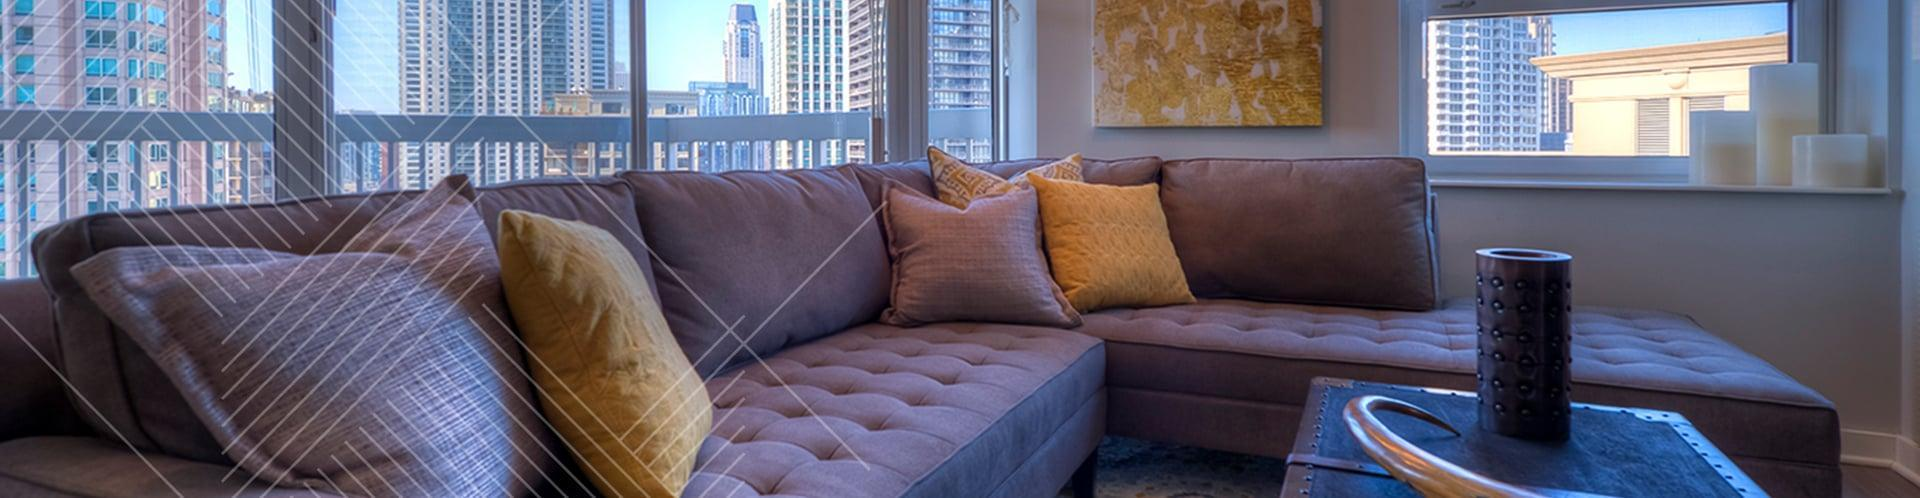 540 N State St #004310, Chicago, IL - $3,899 USD/ month